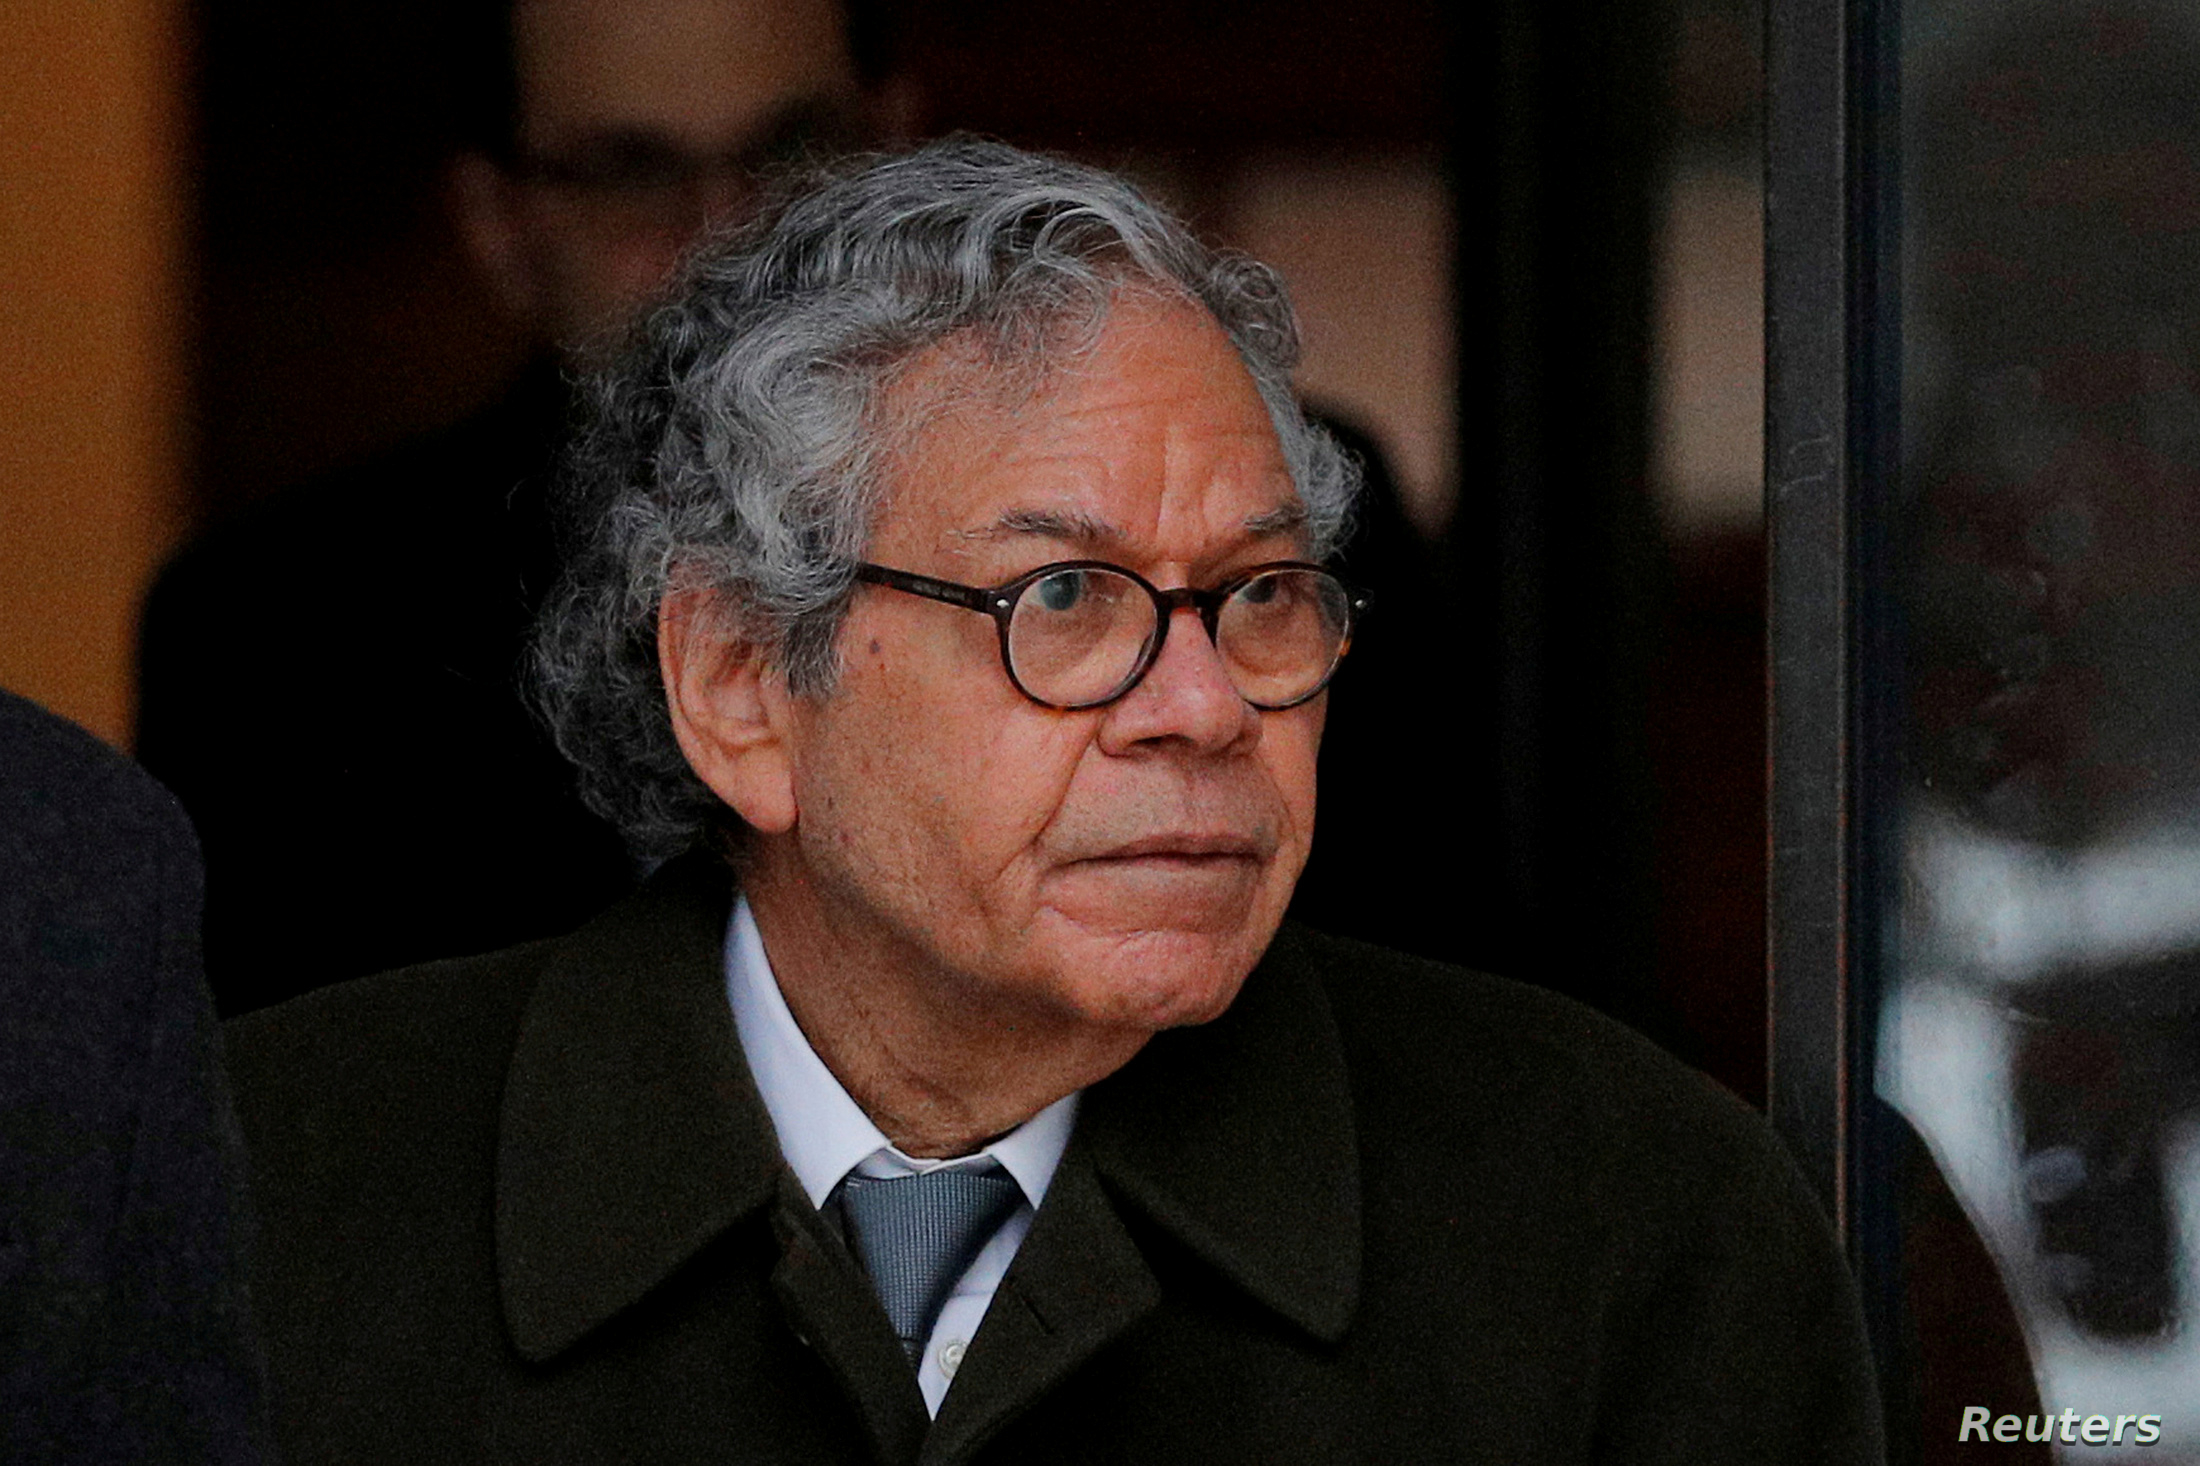 FILE PHOTO: John Kapoor the billionaire founder of Insys Therapeutics Inc., leaves the federal courthouse in Boston